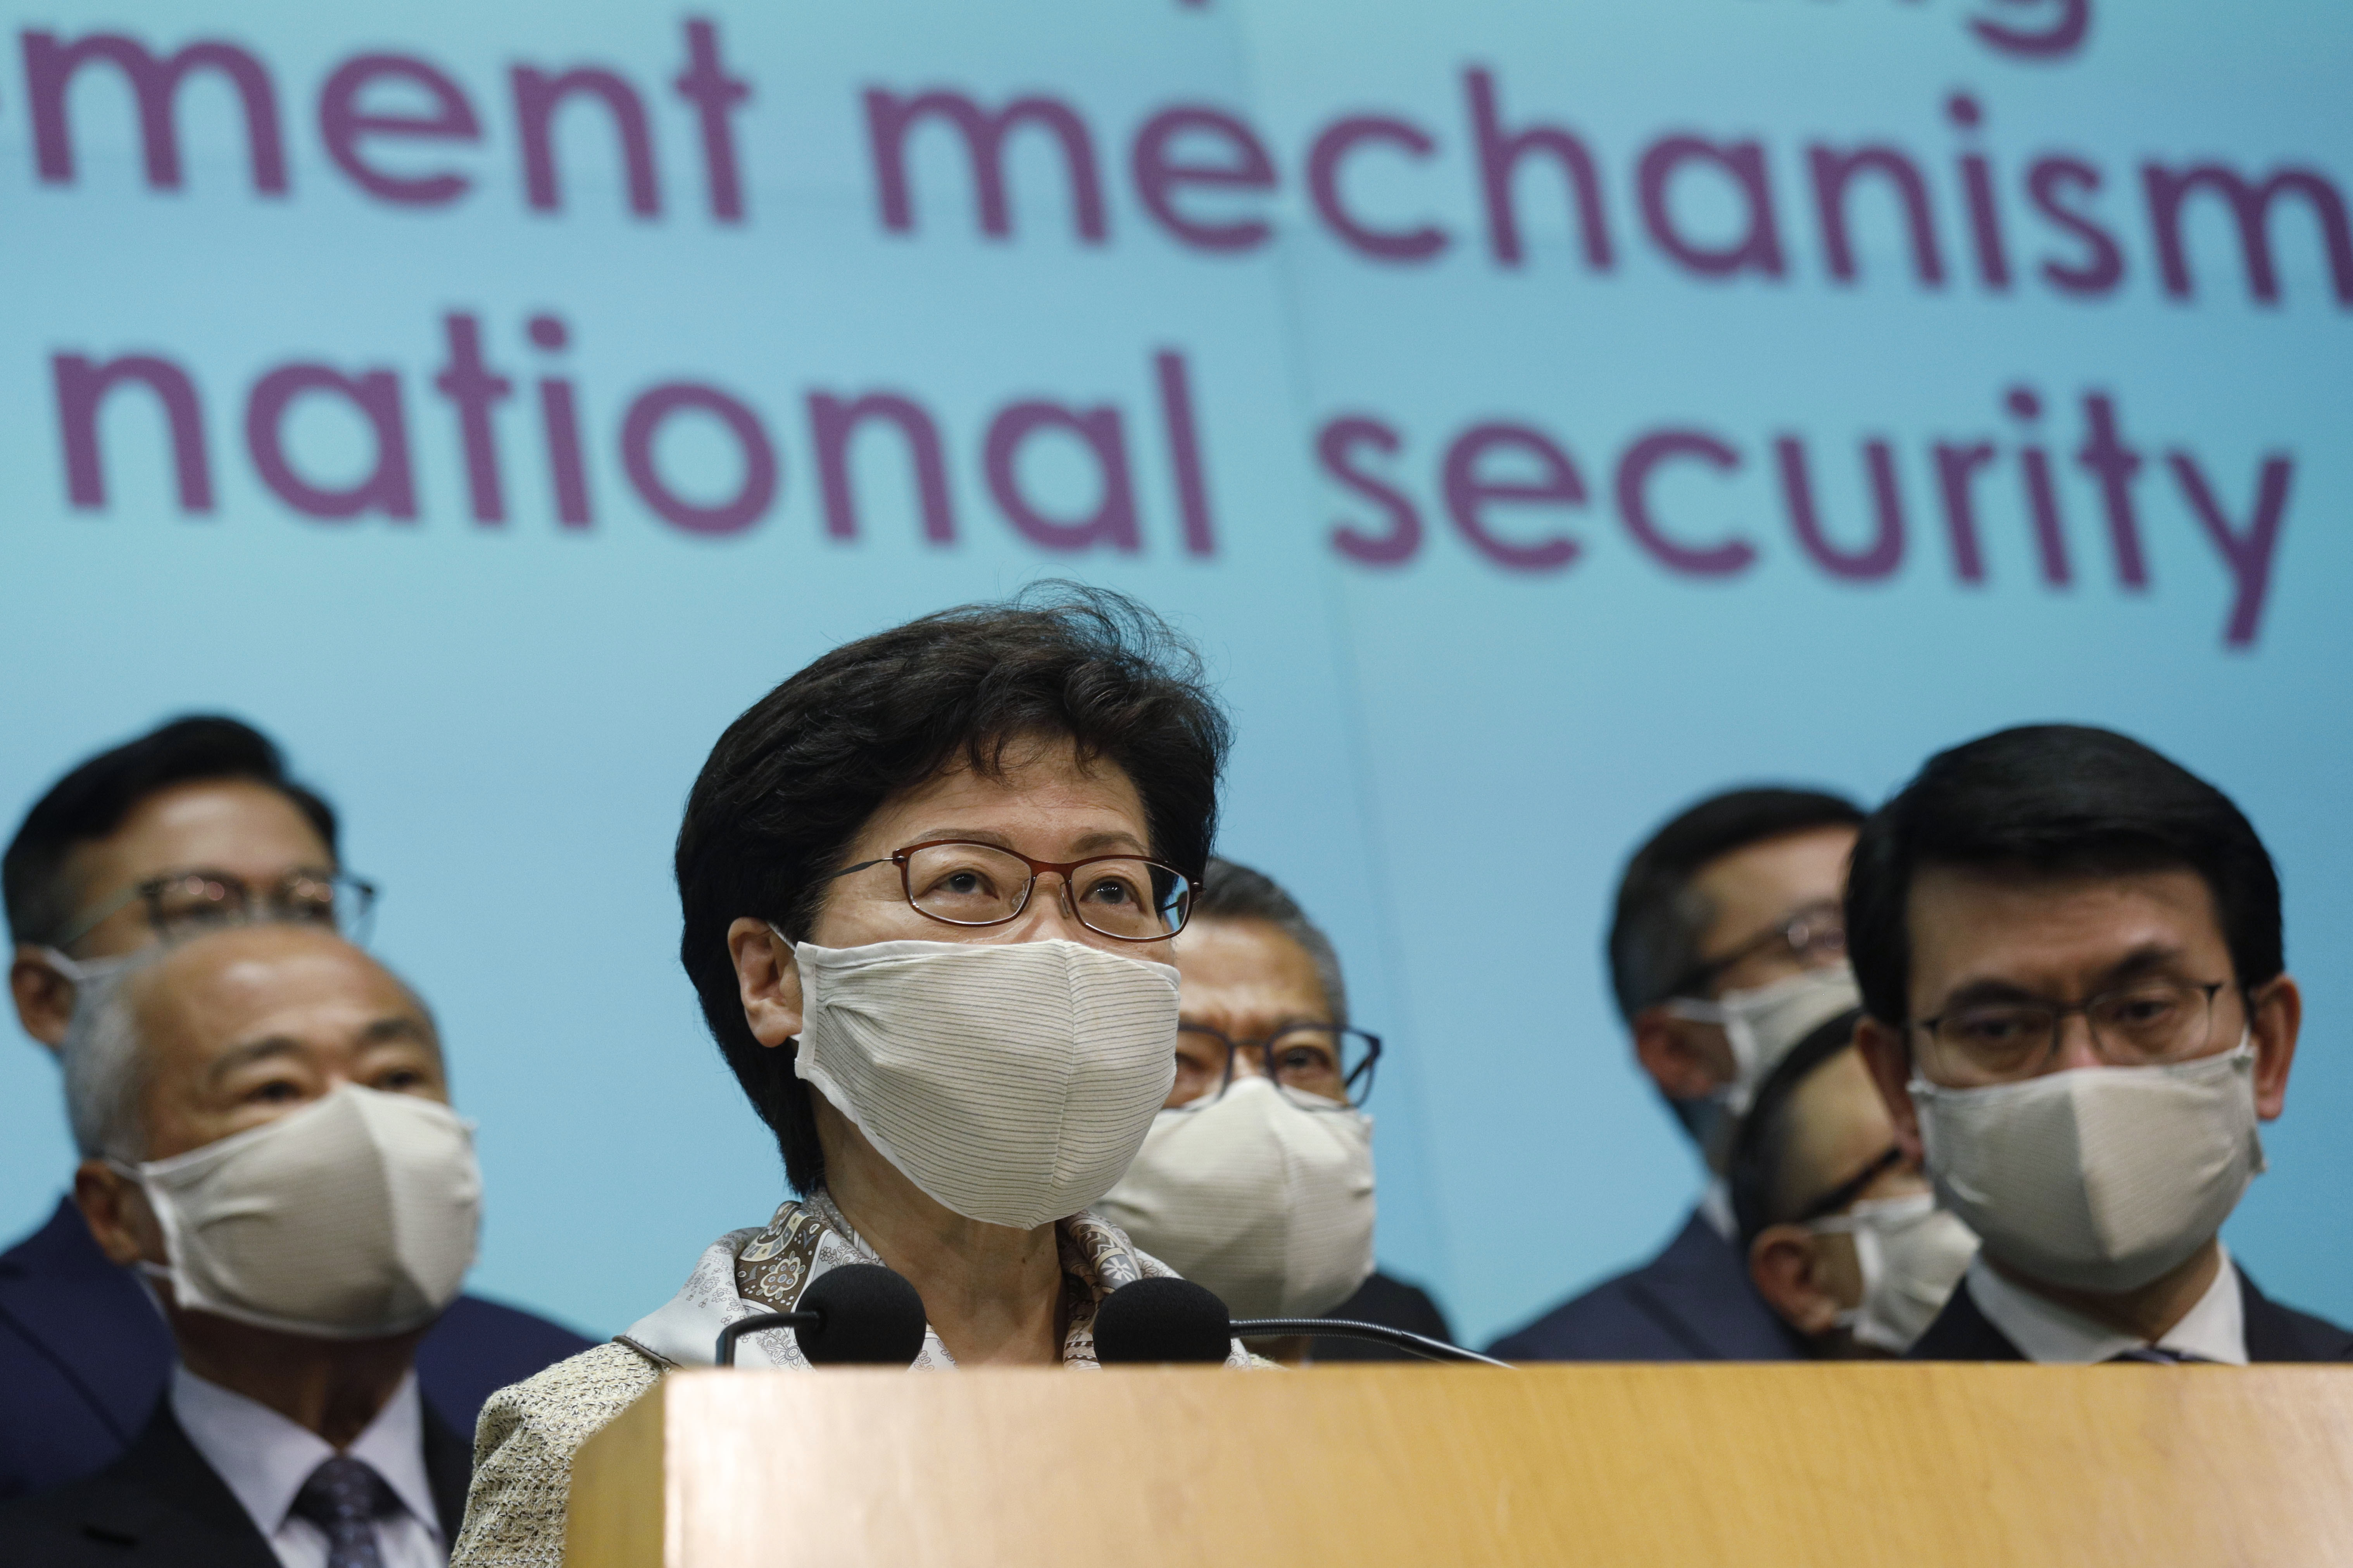 Carrie Lam and other officials attend a news conference in Hong Kong after returning from China's National People's Congress (NPC) meeting in Beijing